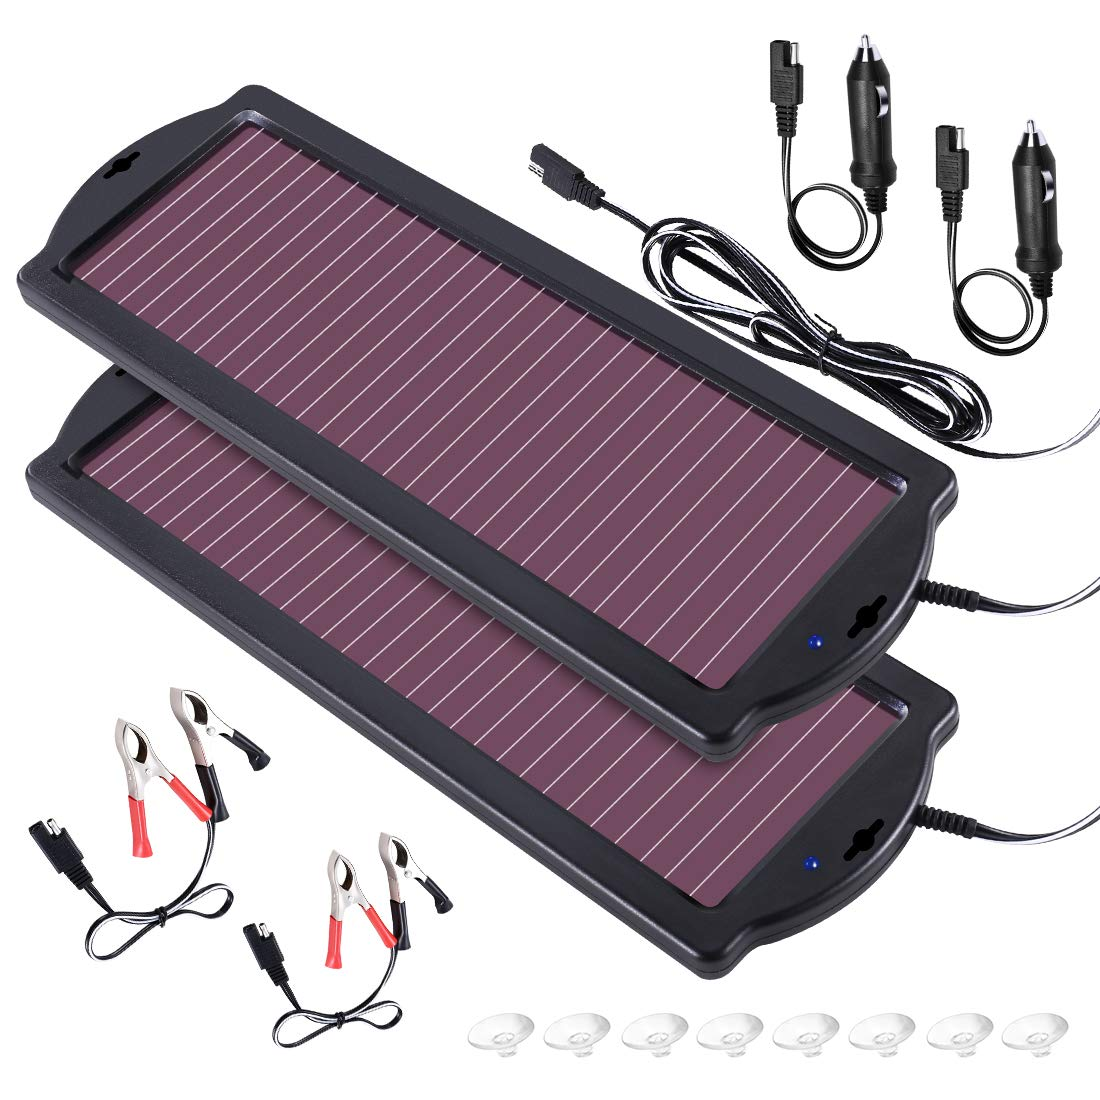 POWOXI Solar Car Battery Trickle Charger, 12V 1.8W Solar Battery Charger Car, Waterproof Portable Amorphous Solar Panel for Rv Motorcycle Watercraft by POWOXI